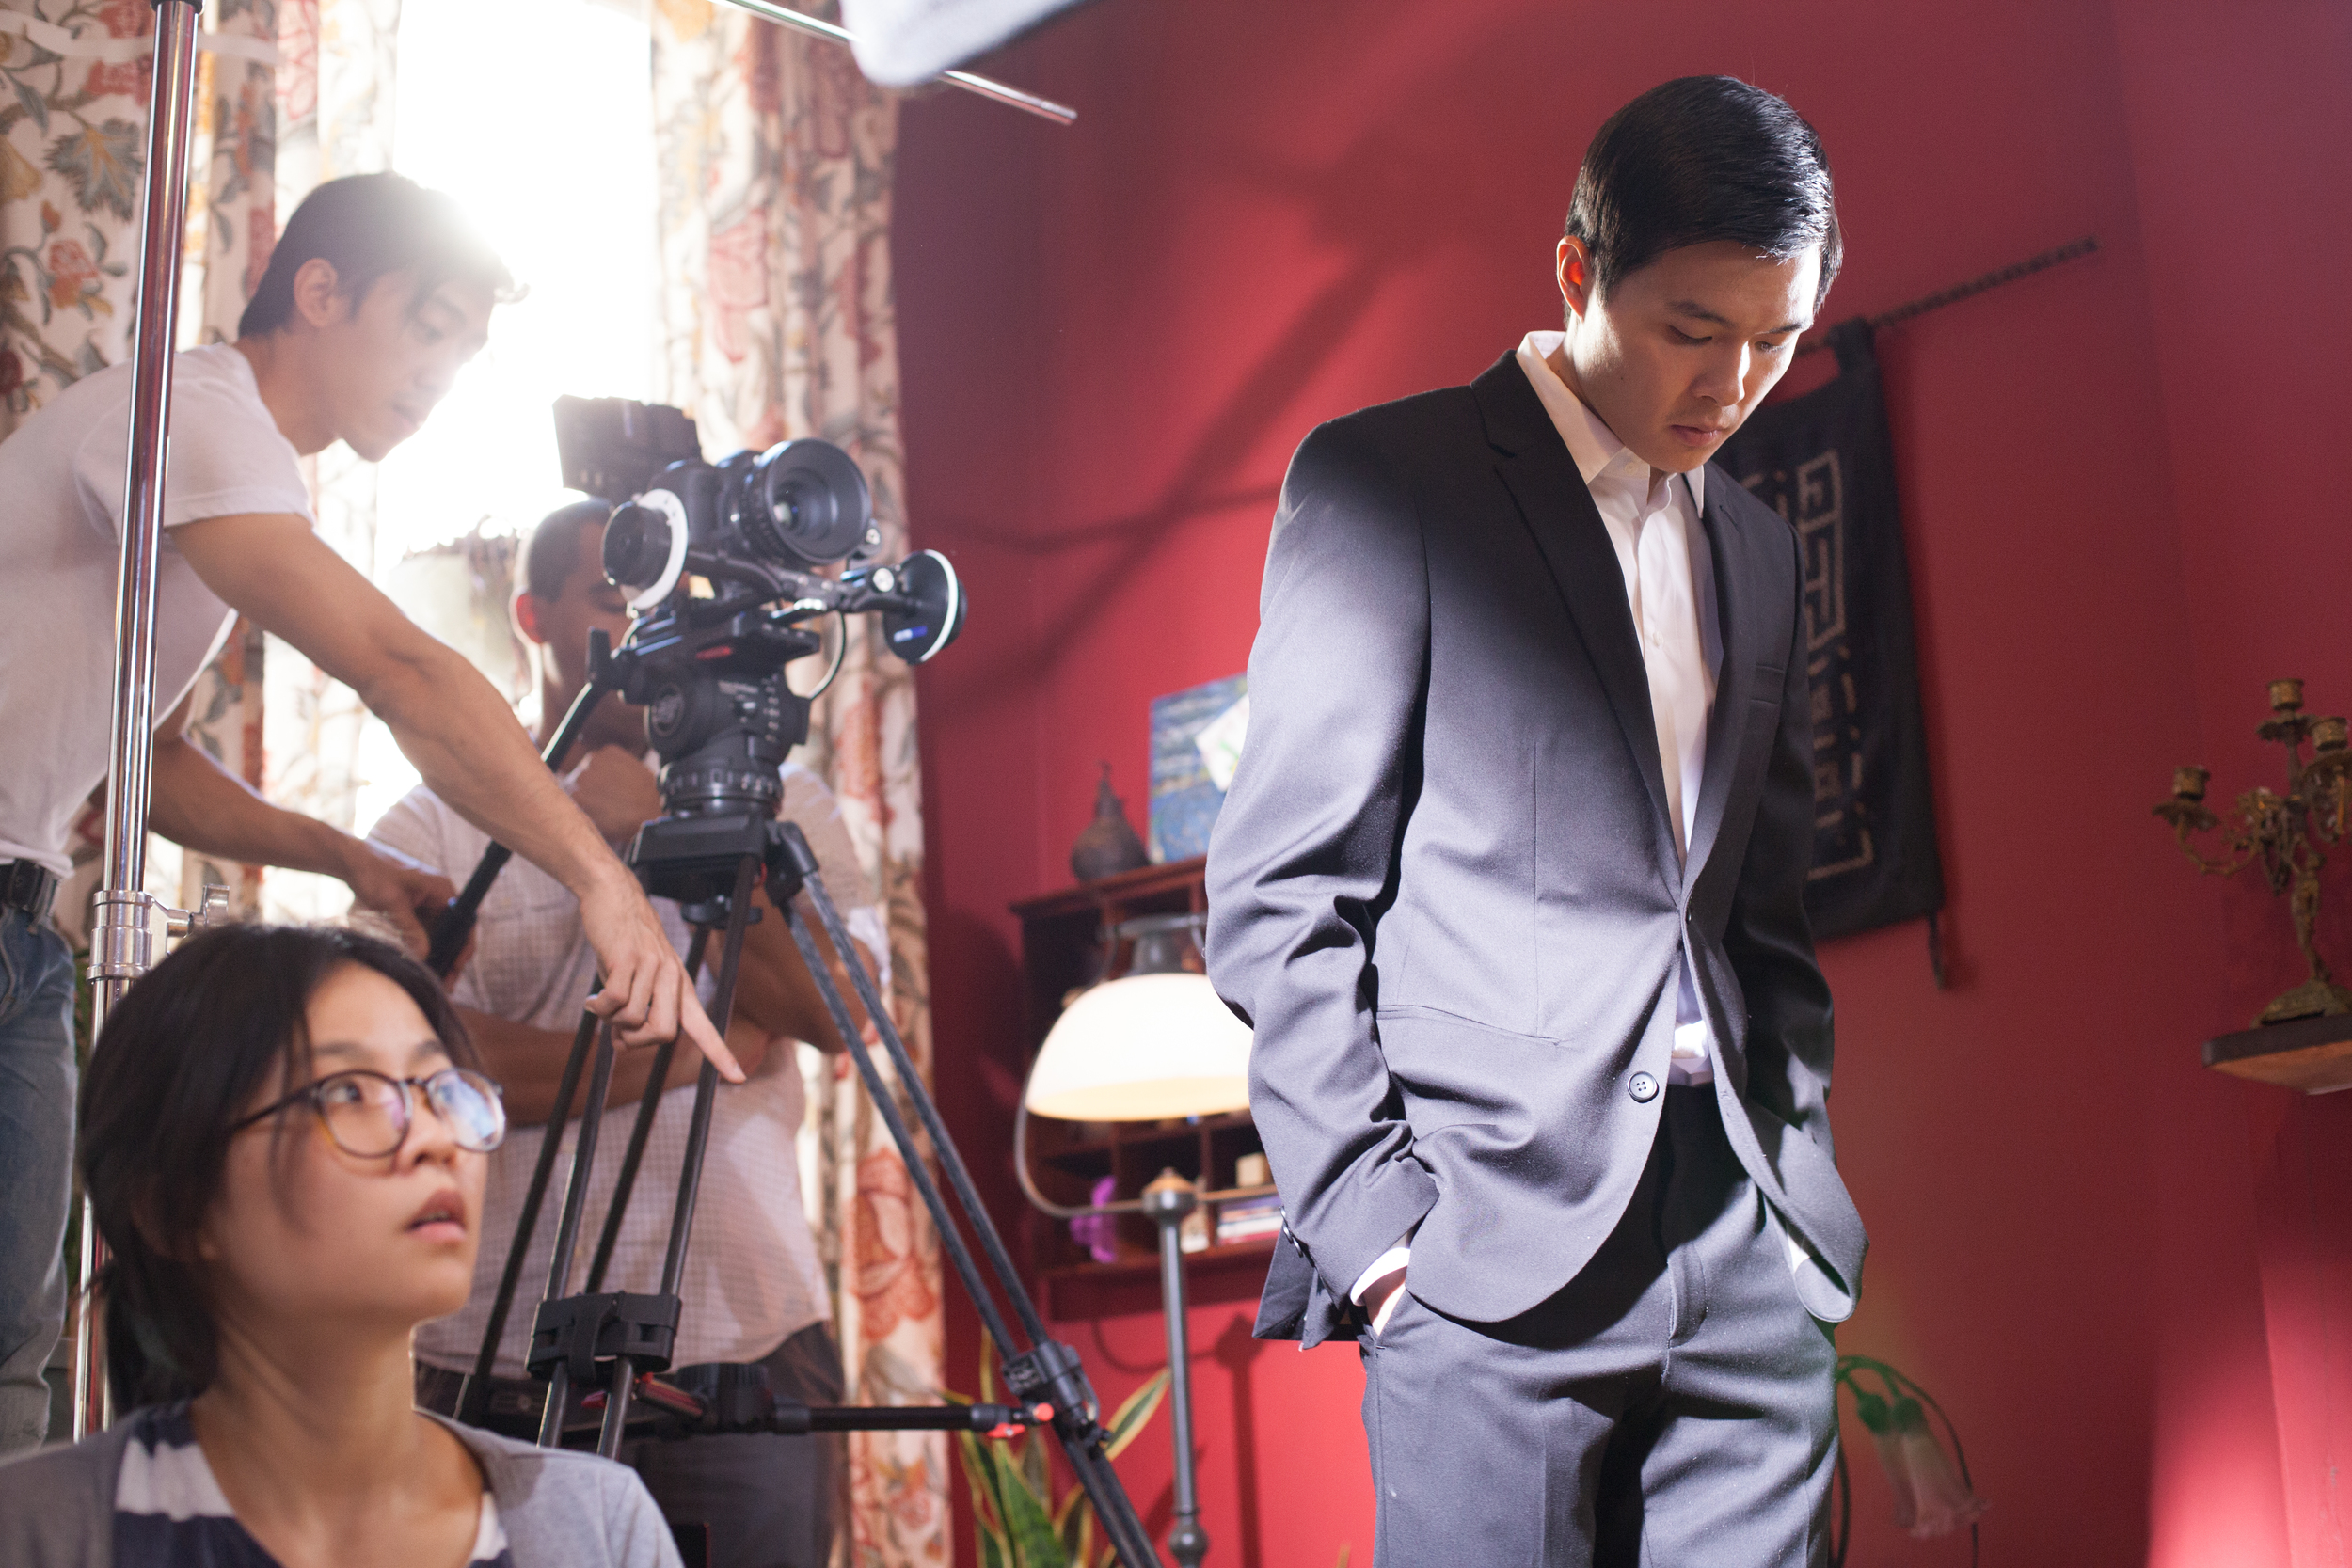 Actor Zilong Zee (Michael) is taking a moment for himself before a take.